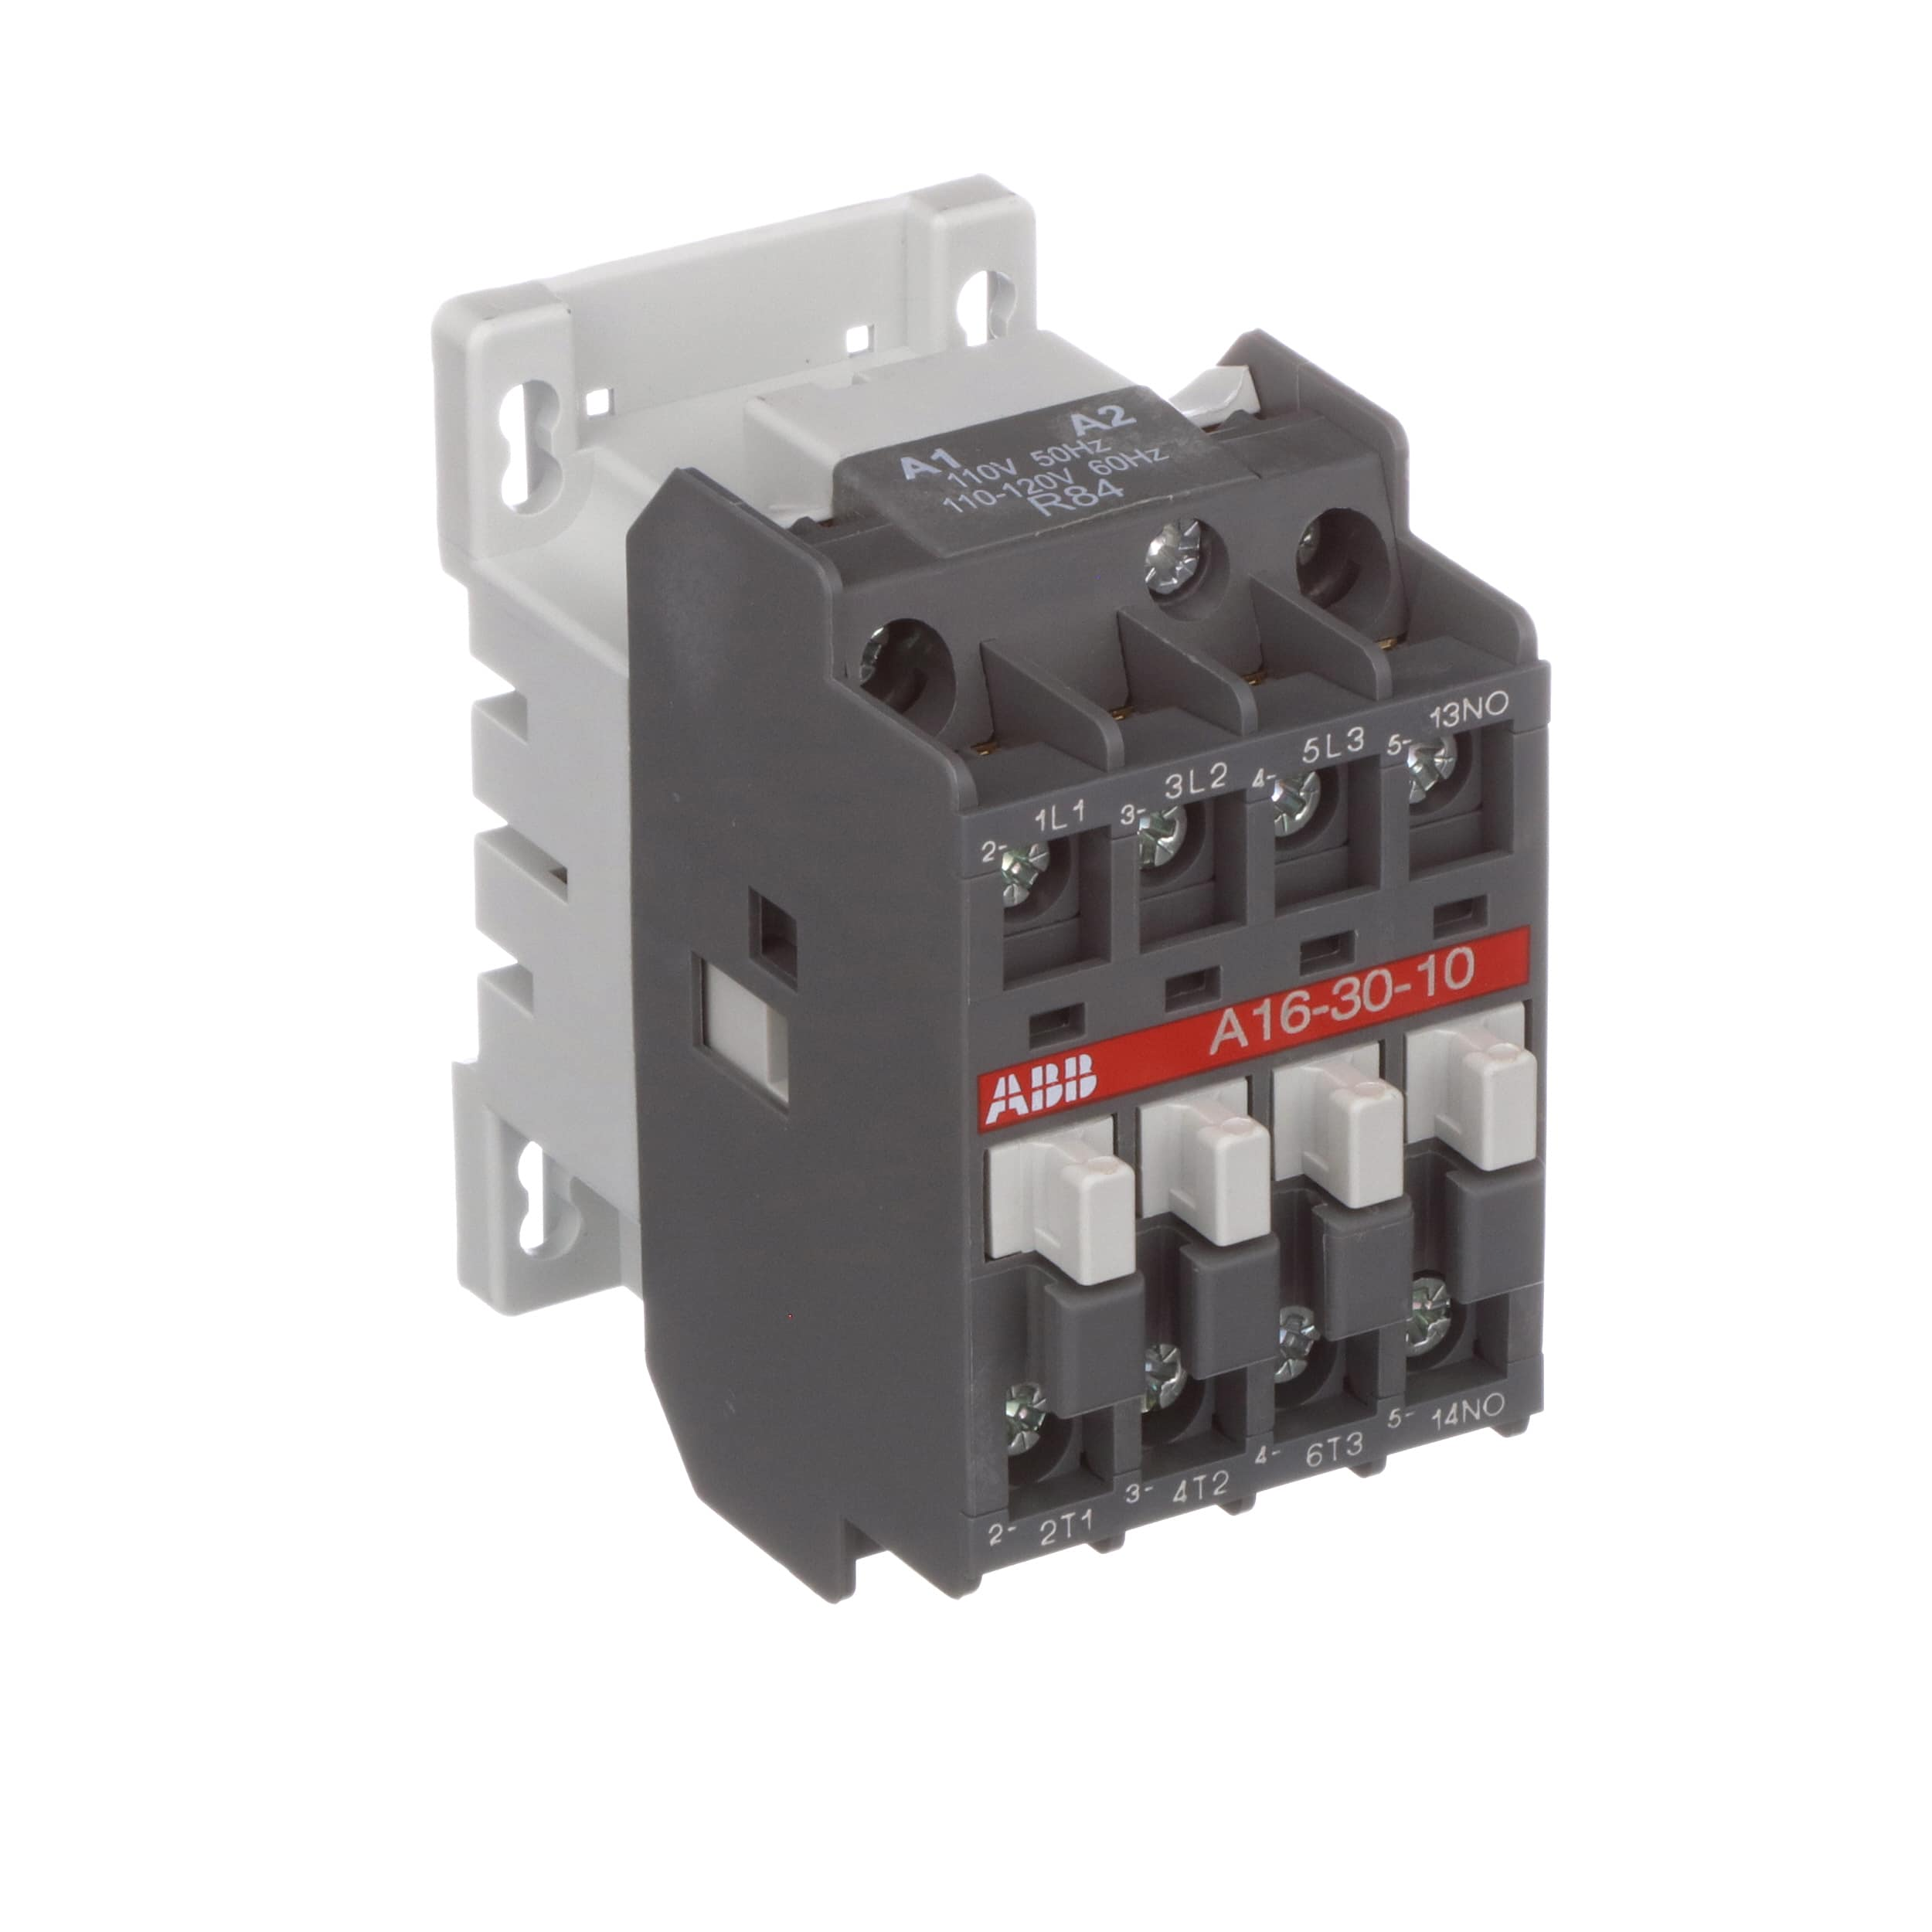 ABB - A16-30-10-84 - A16 3 Pole Contactor; 30 A; 7.5 kW; 110- 120 V Coil -  Allied Electronics & Automation